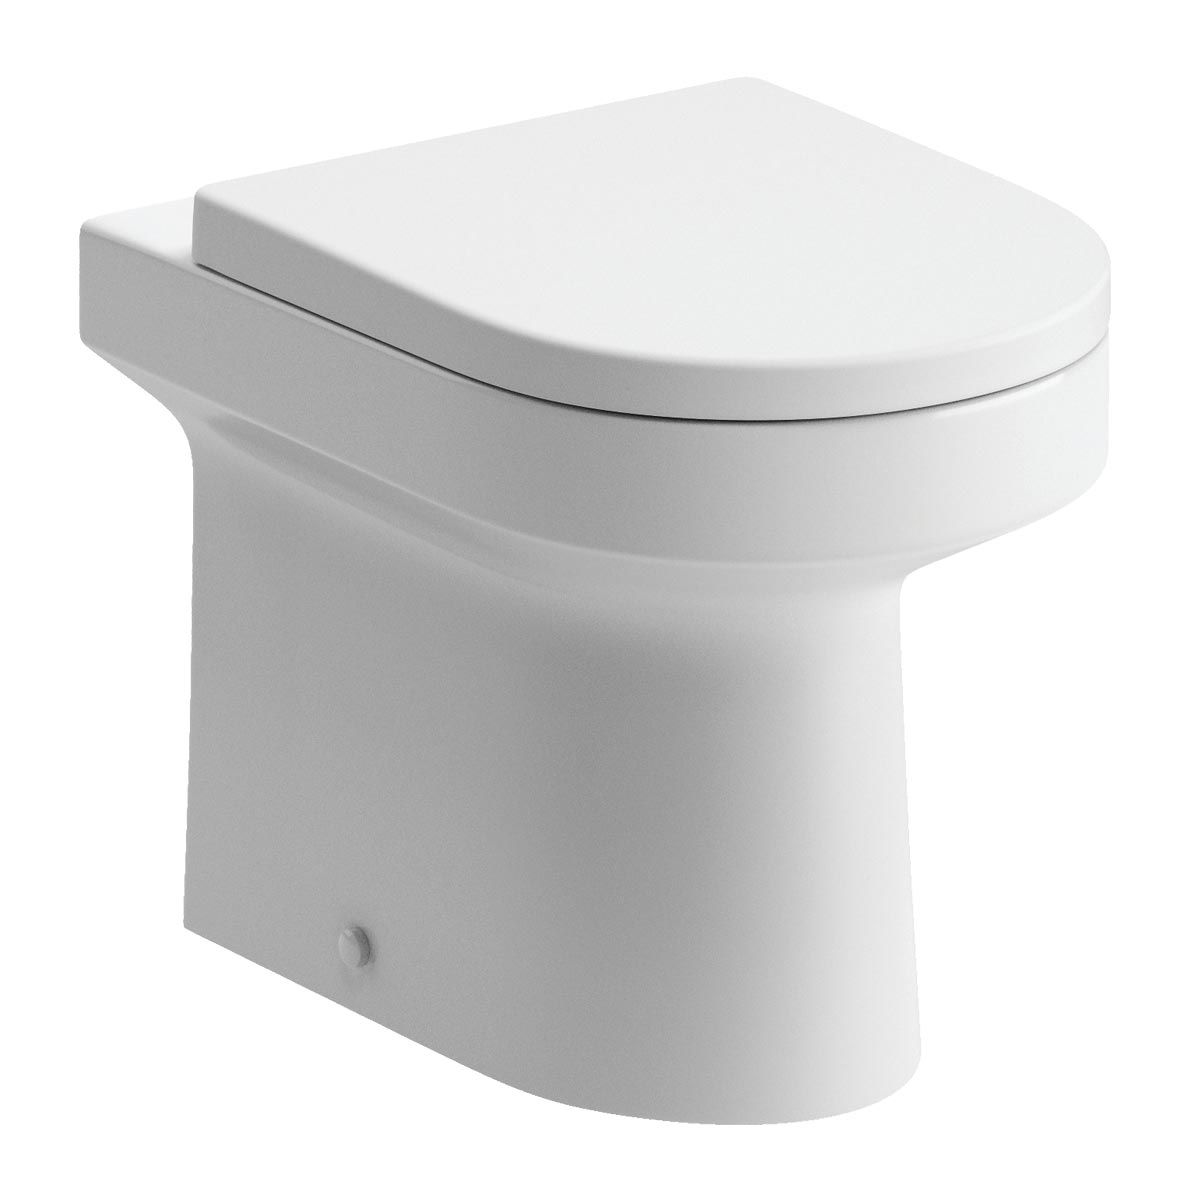 BTL White Laurus² Back To Wall Toilet with Soft Close Seat